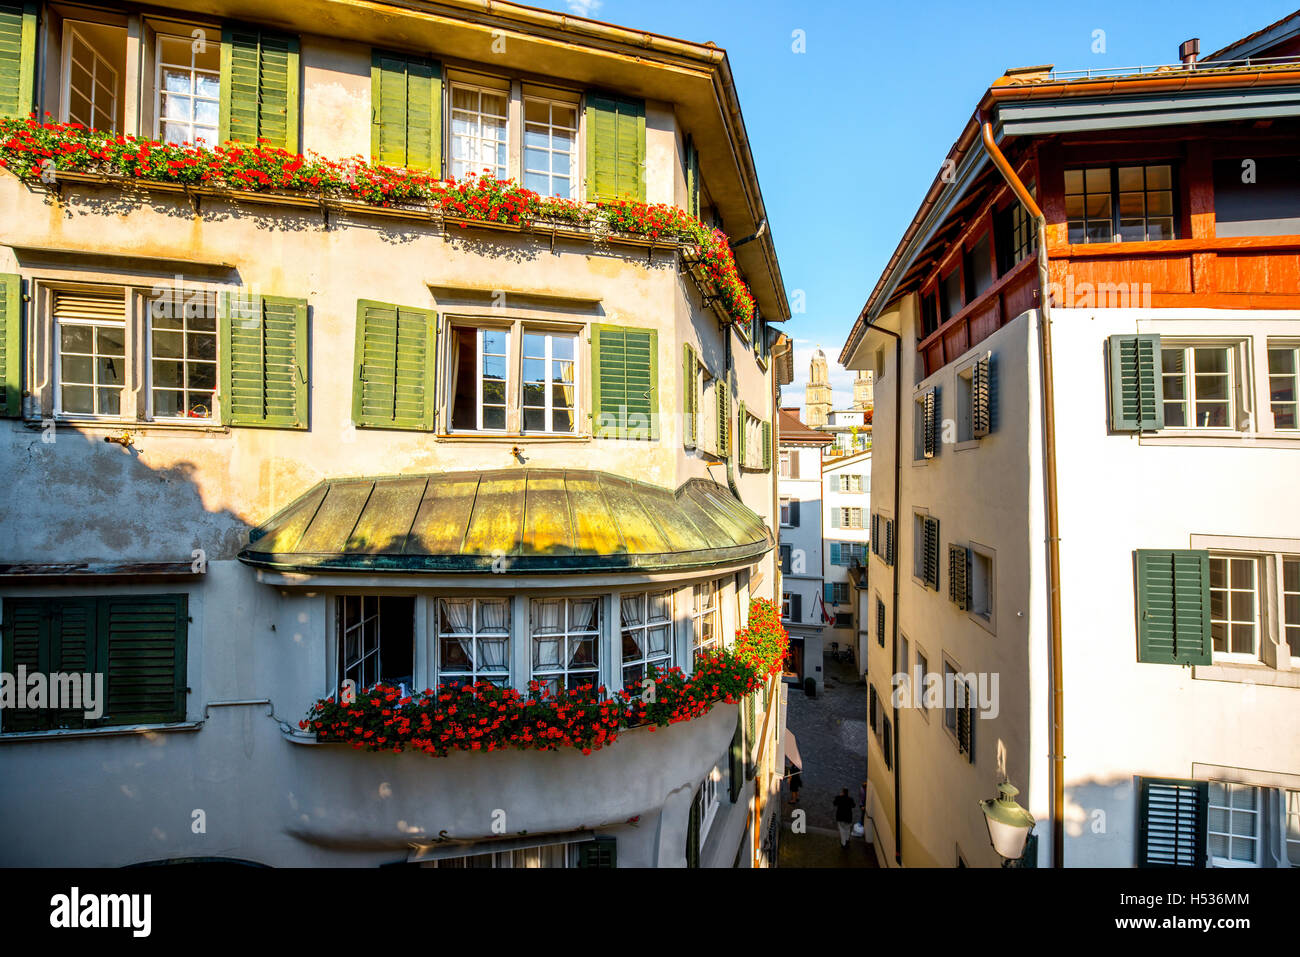 Architecture in Zurich city - Stock Image